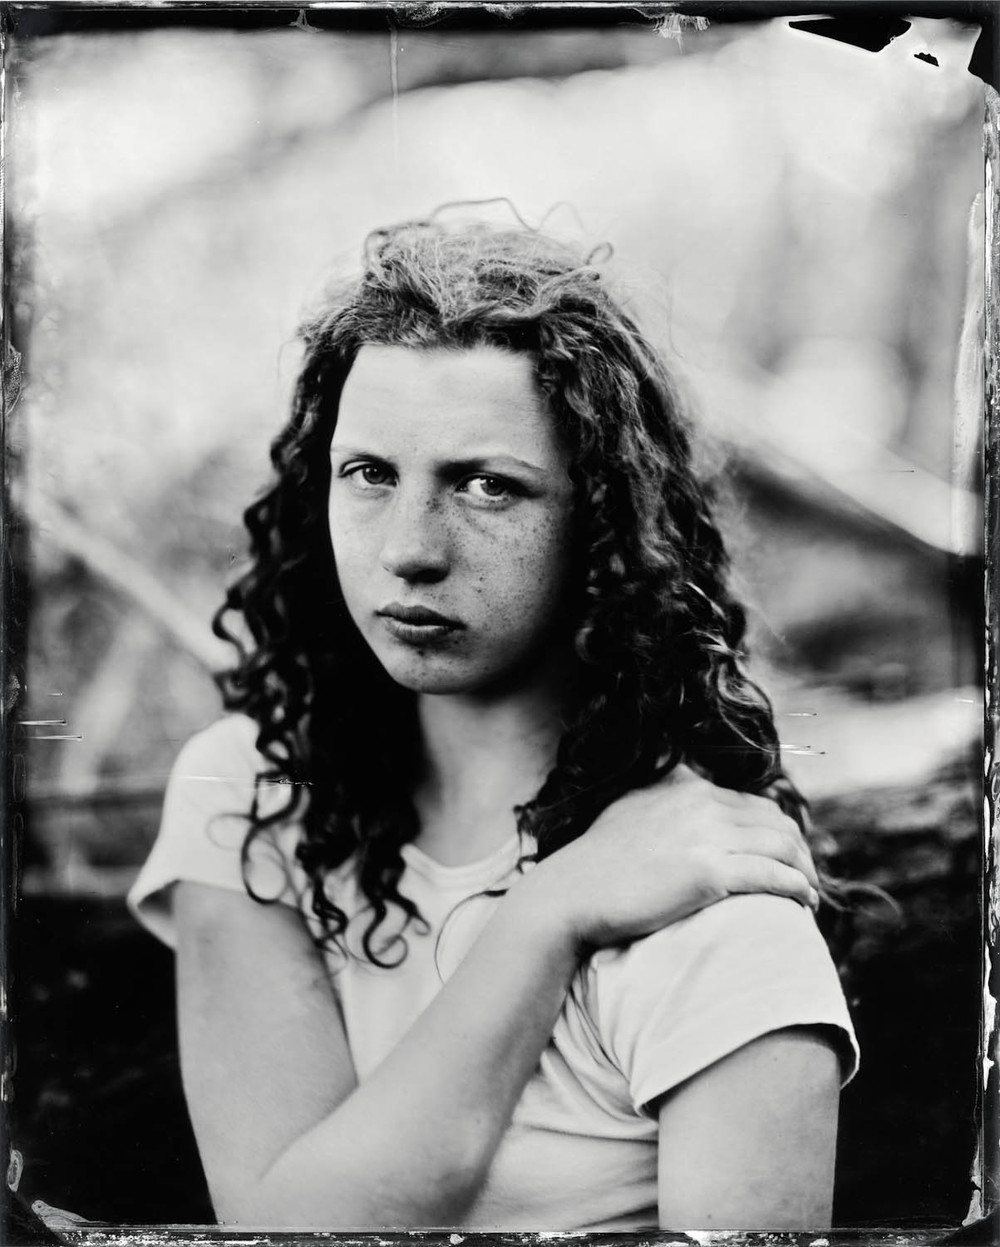 emil_ryge_tintype_wetplate_youth_wetplate-scan322_edit.jpg